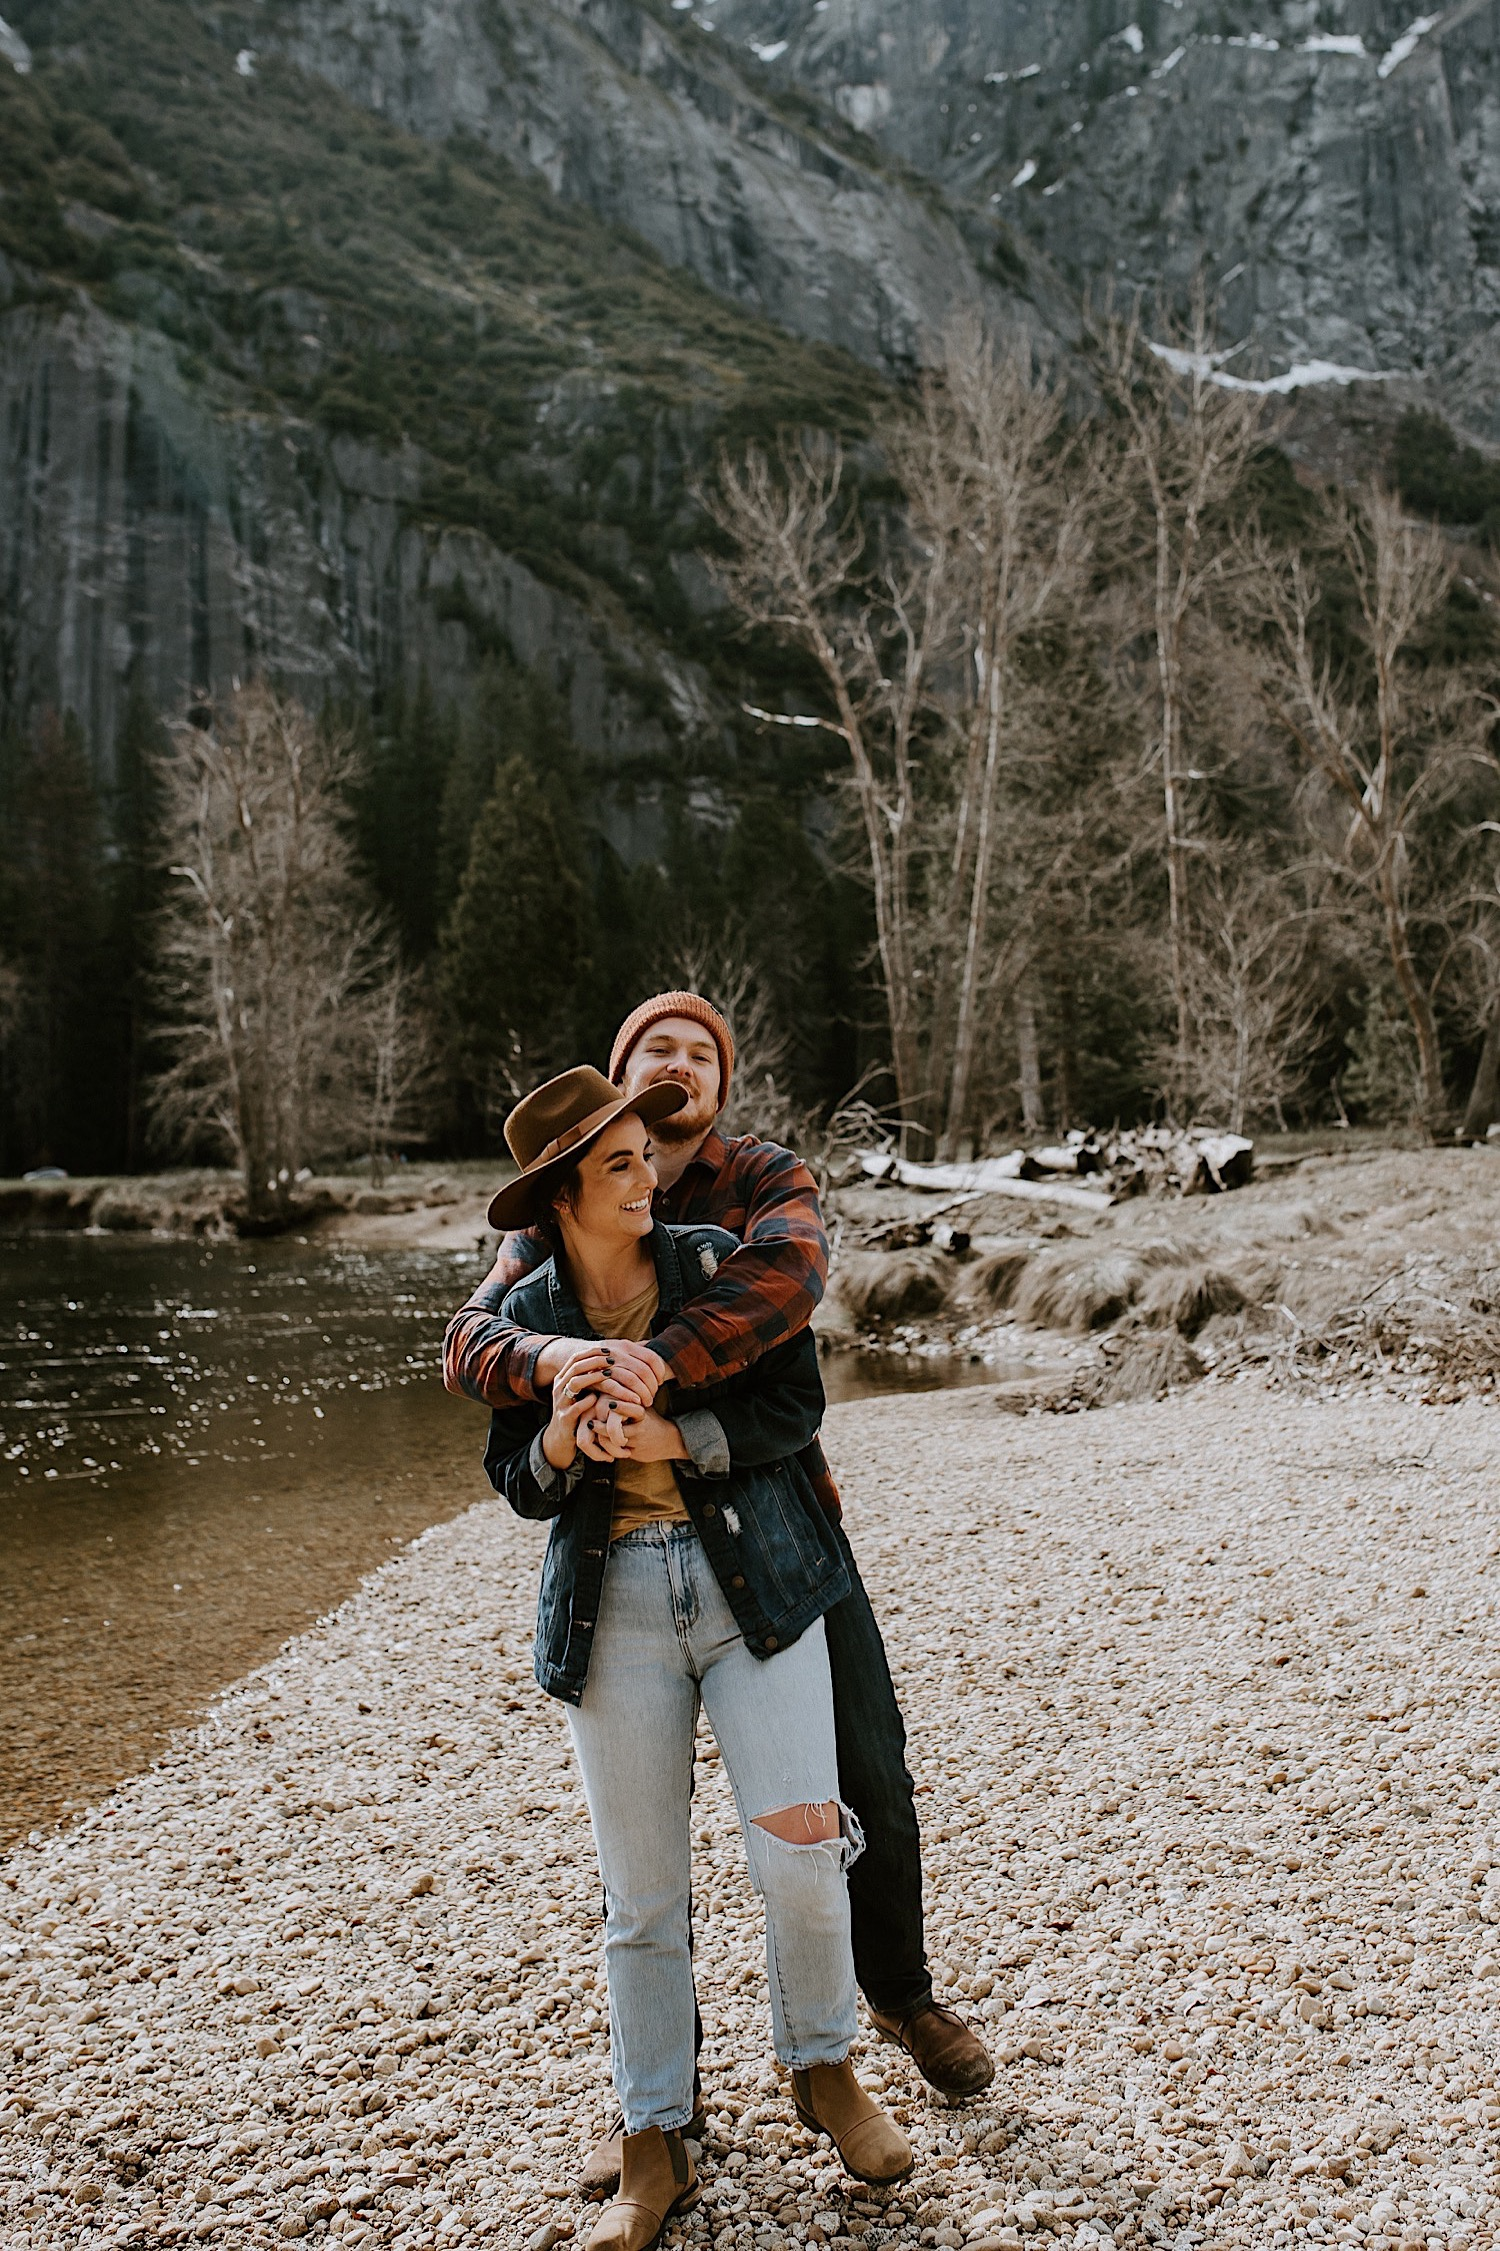 Yosemite Anniversary California Wedding Photographer San Francisco Wedding Photographer Yosemite Elopement 36